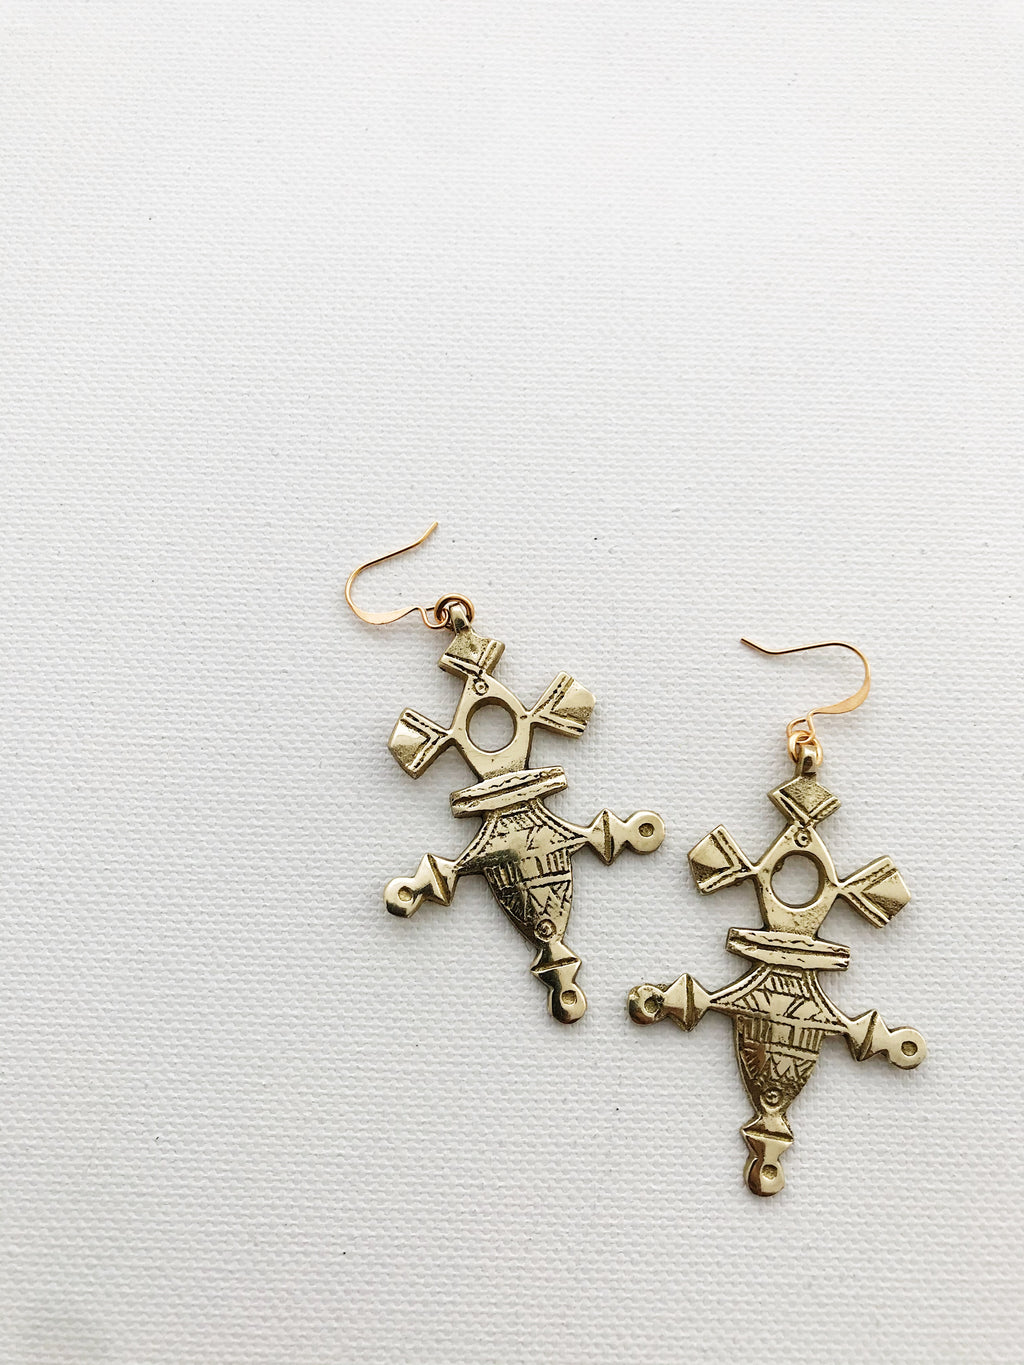 Berber Tuareg Earrings